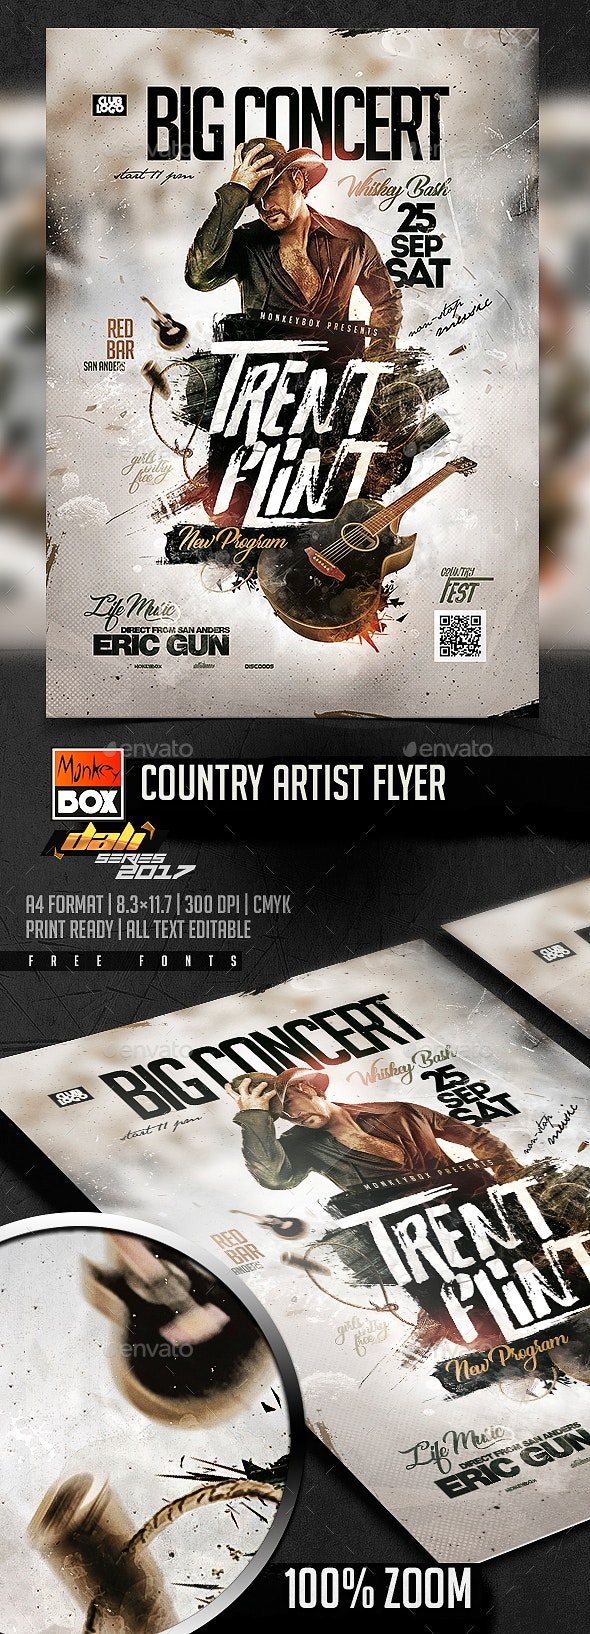 Country Artist Flyer - Flyers Print Templates